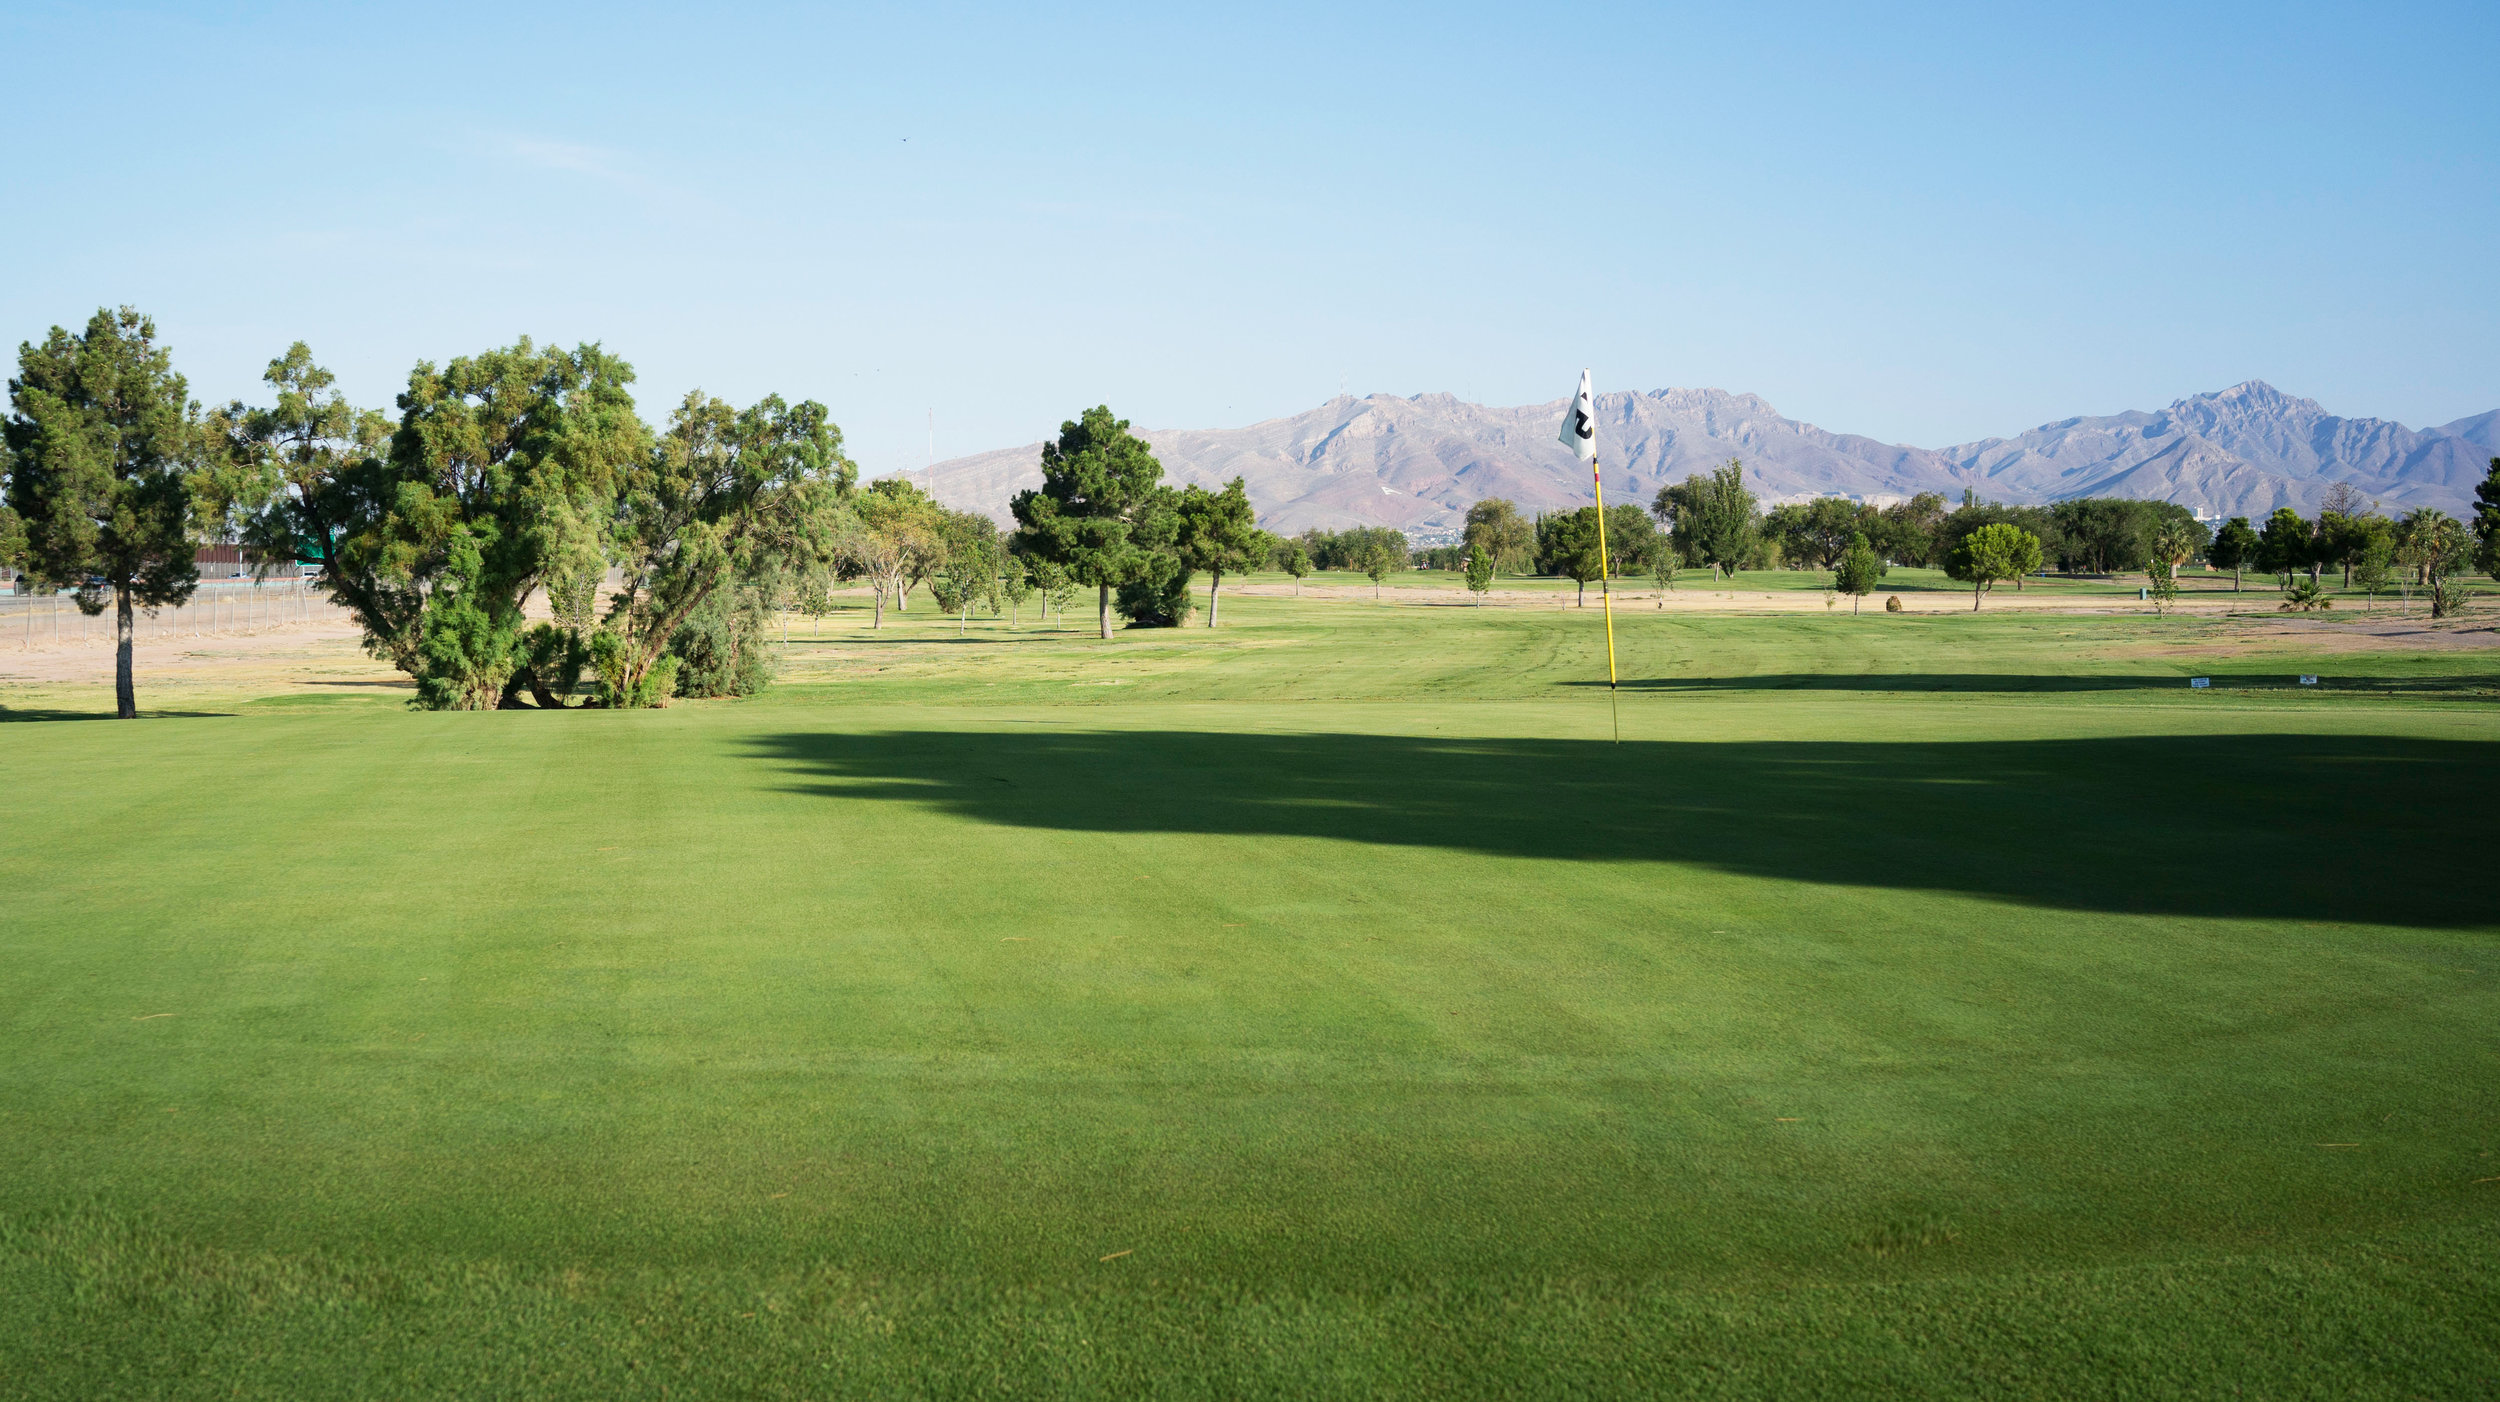 The 15th green at Ascarate Golf Course.